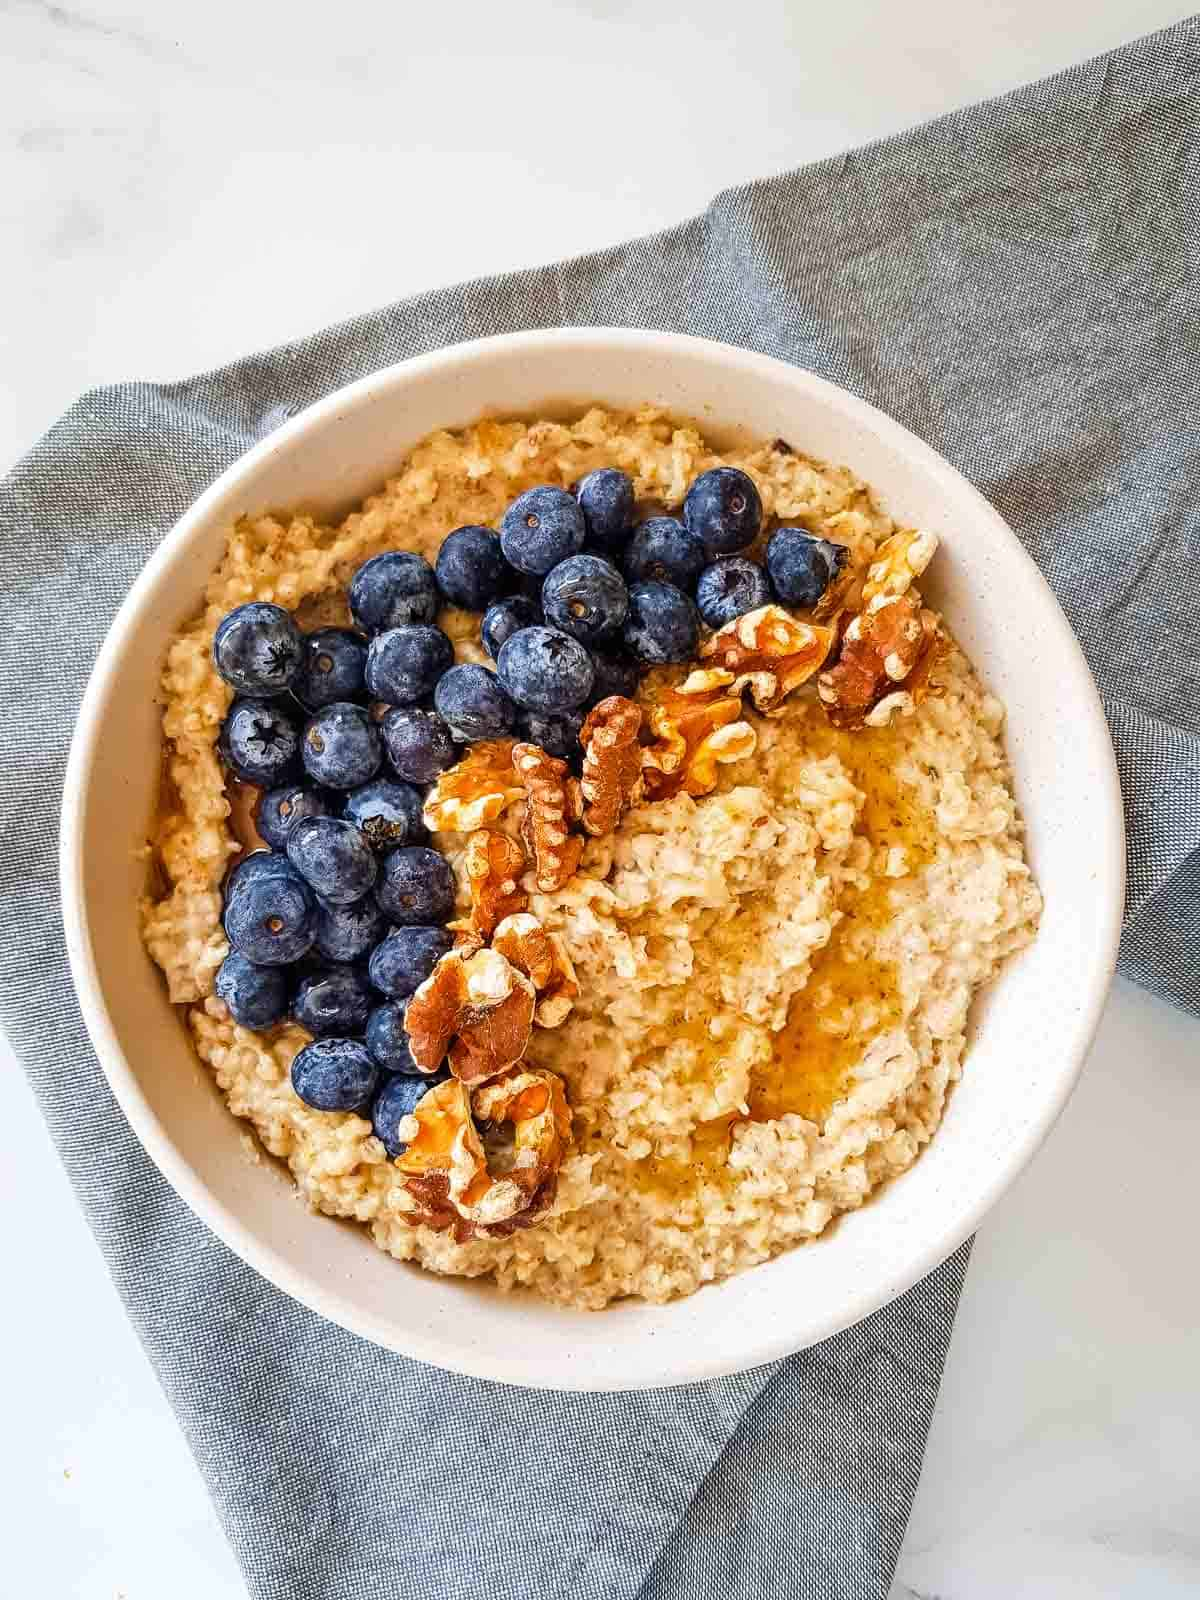 Flaxseed oatmeal with blueberries and walnuts.